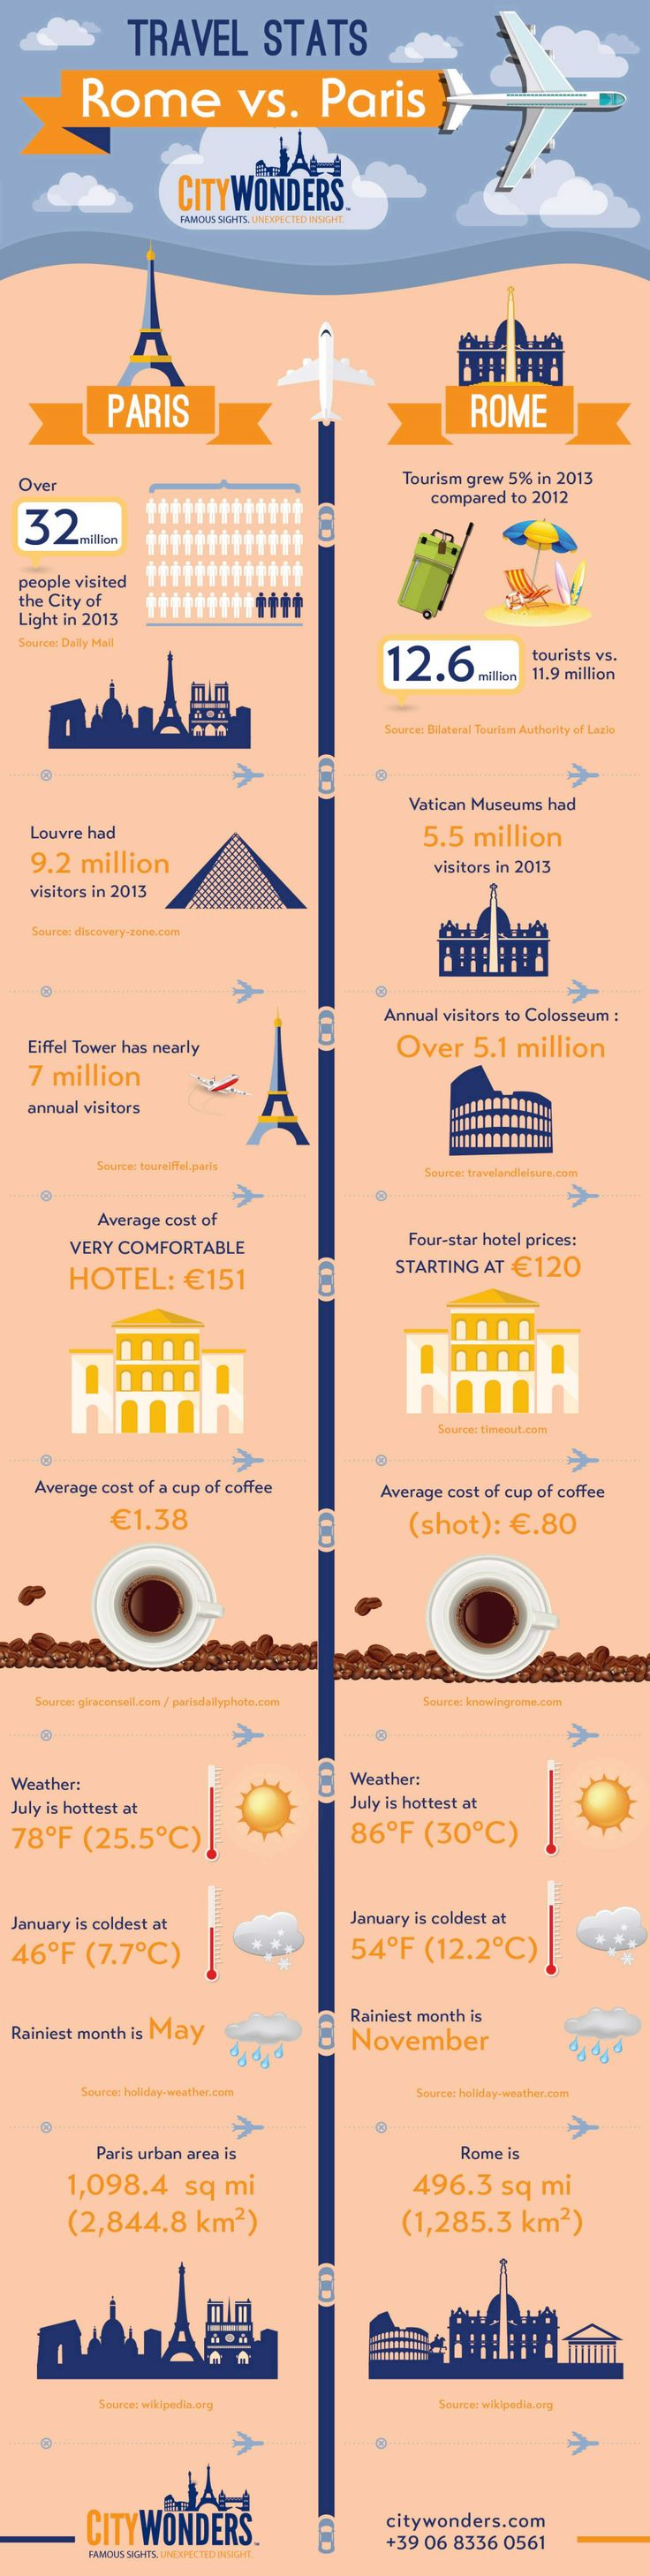 Travel Infographic: Rome VS. Paris. Major differences between Paris and Rome in travel stats, useful for when planning a city trip! #infografía